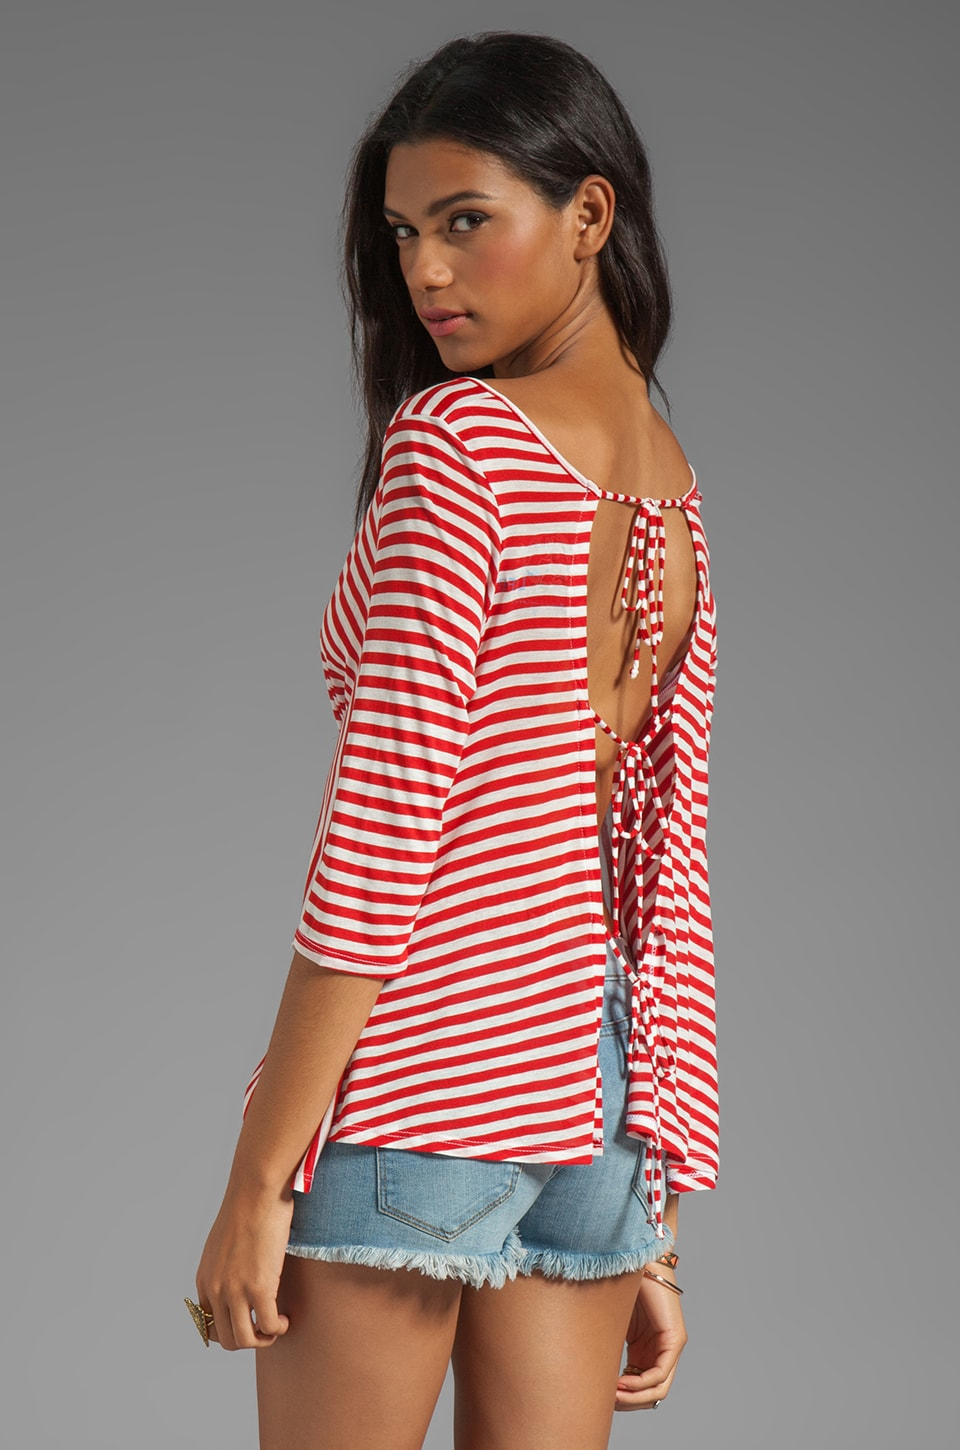 Blue Life Bare Belly Back Tie Top in Red Stripe